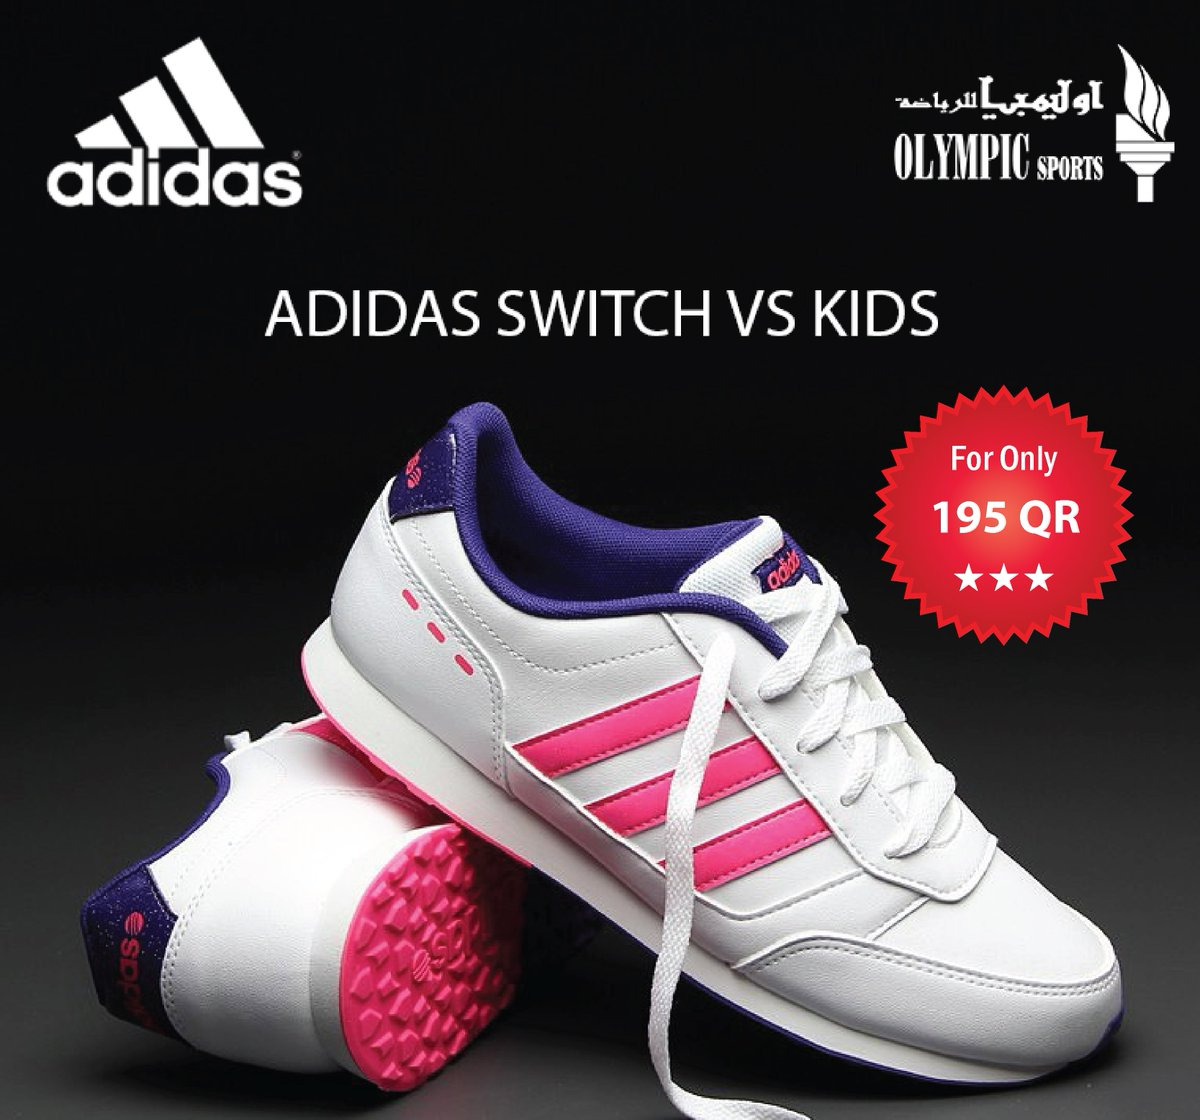 adidas shoes in doha